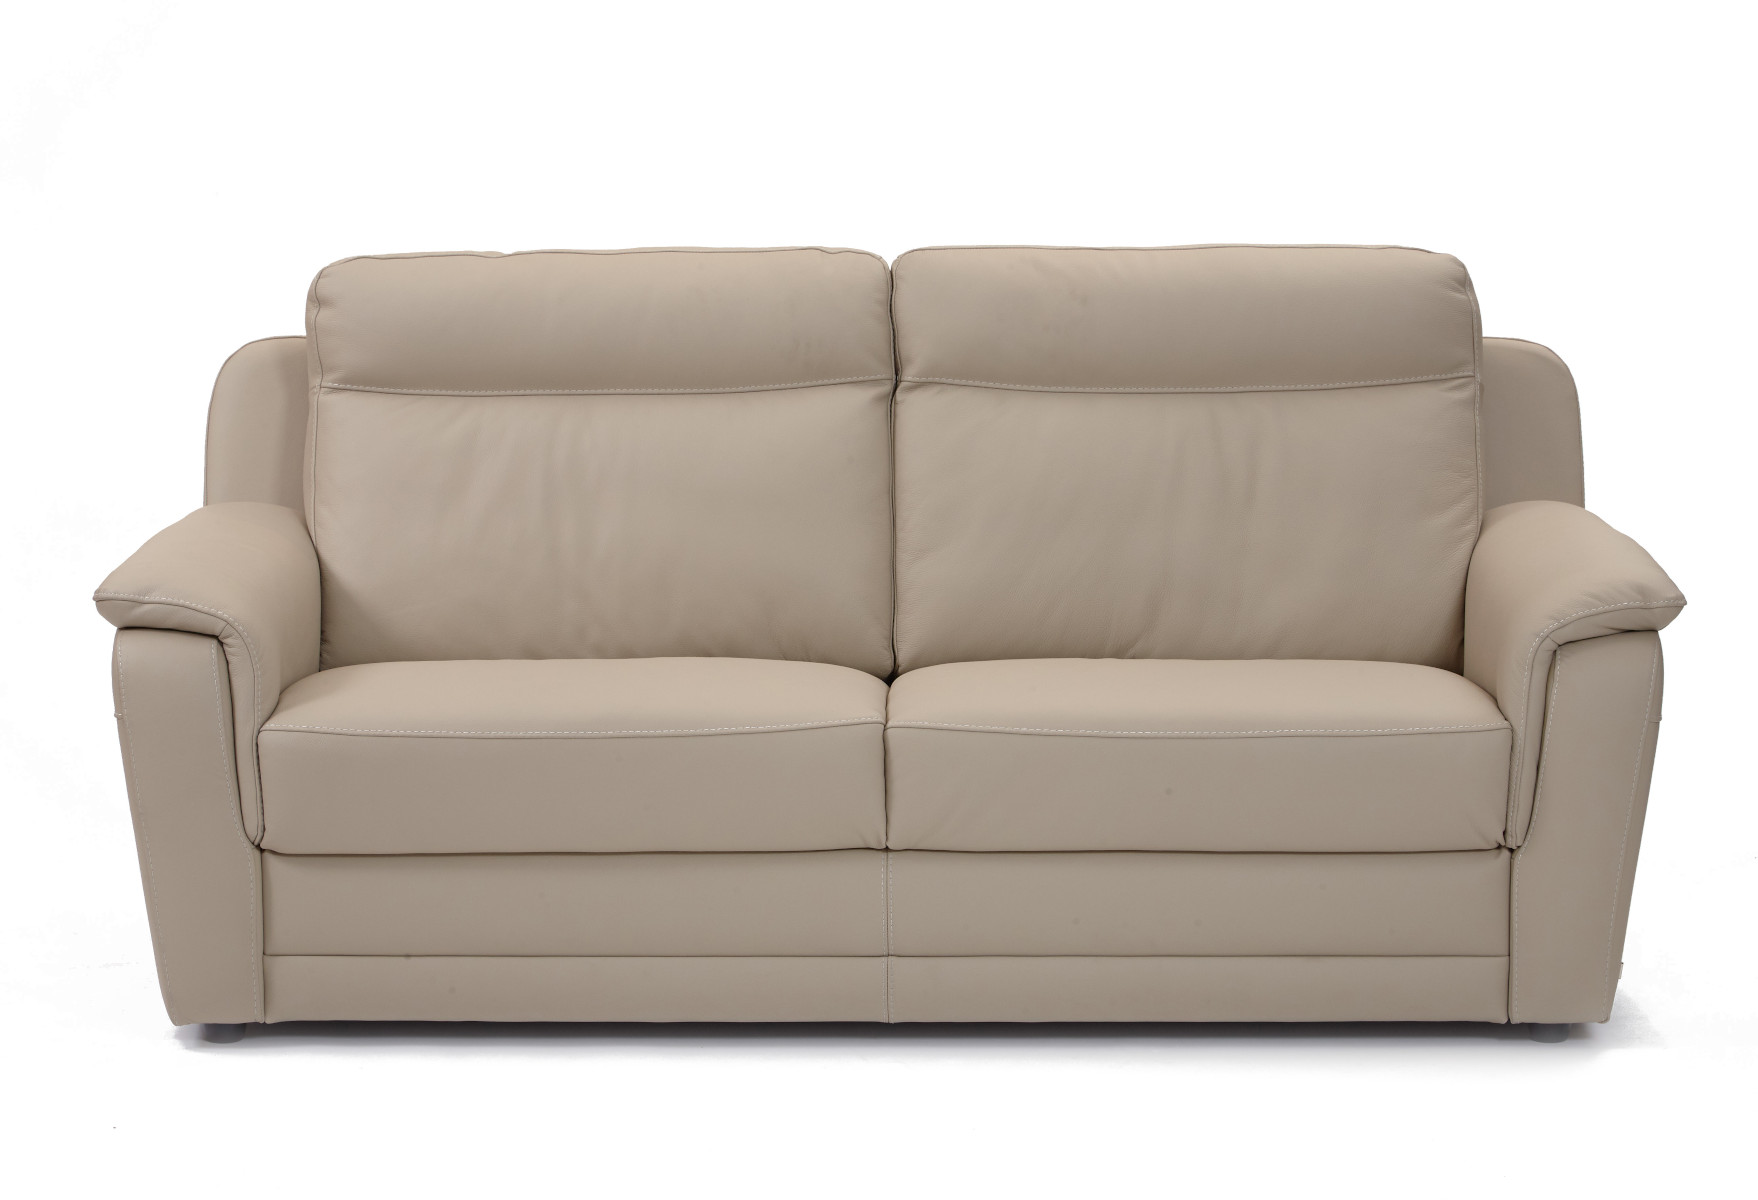 Dallas 3 Seater Sofa